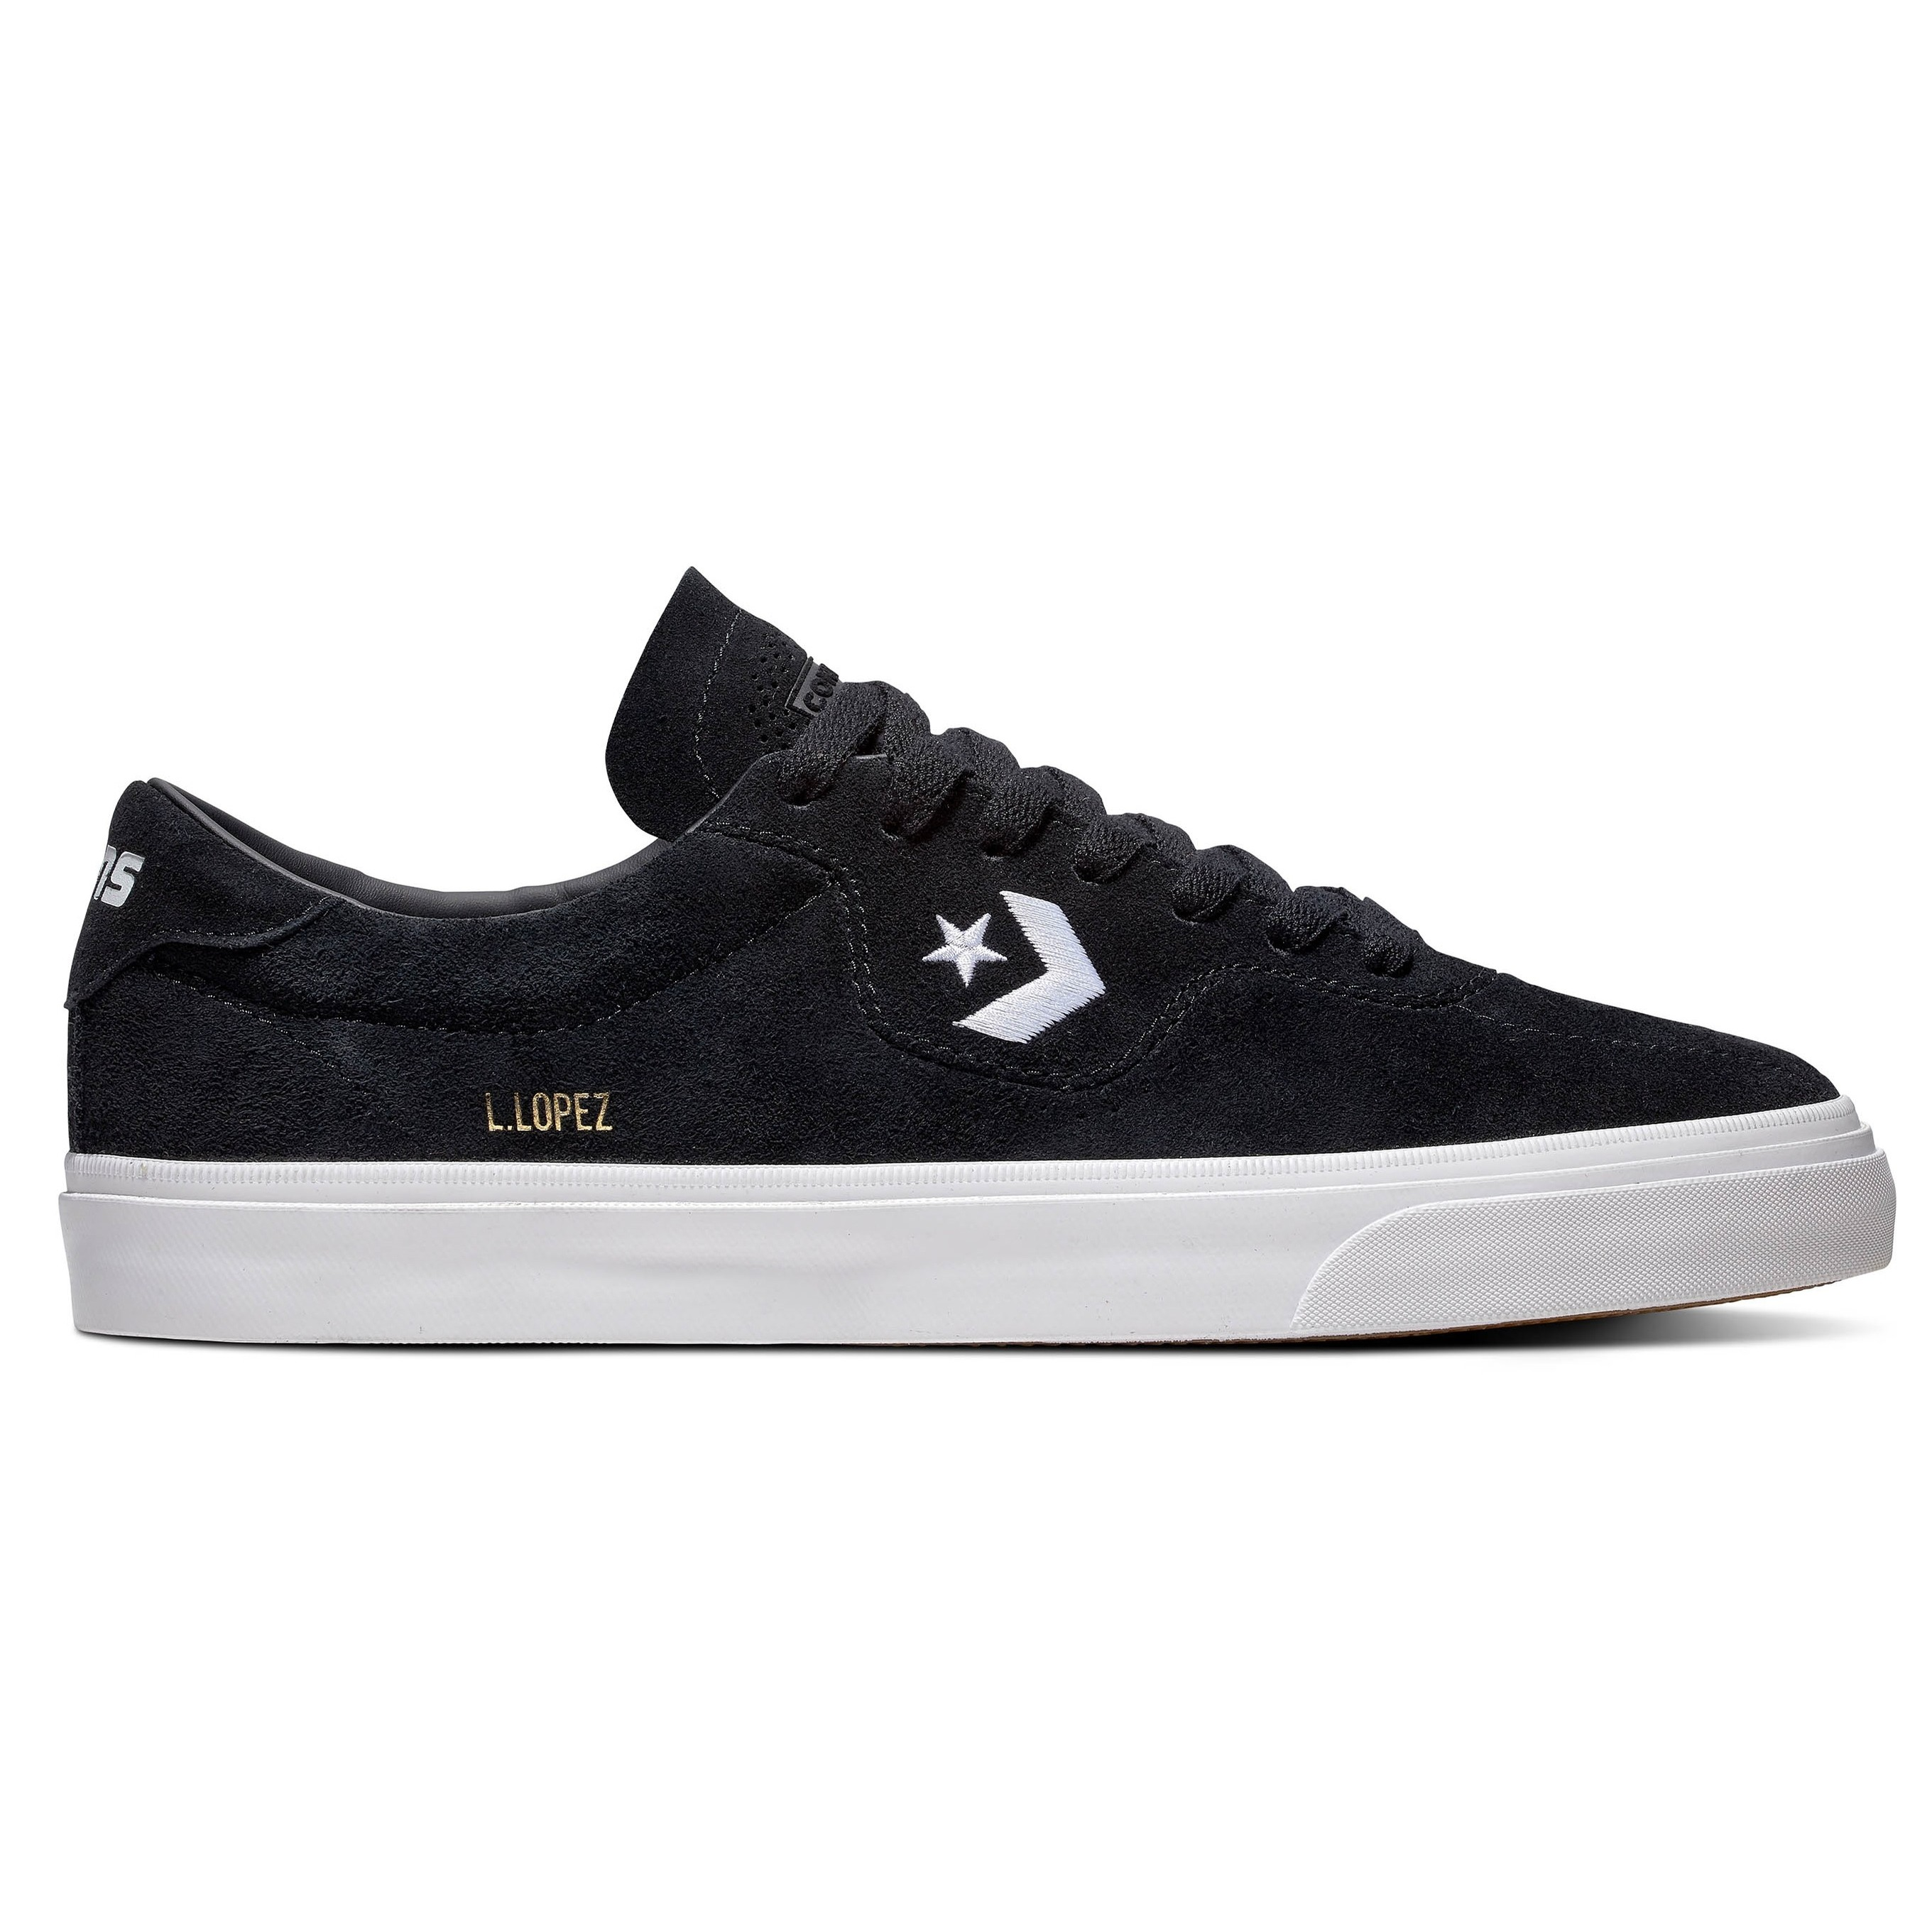 Louie Lopez Pro Ox (Black/Black/White)